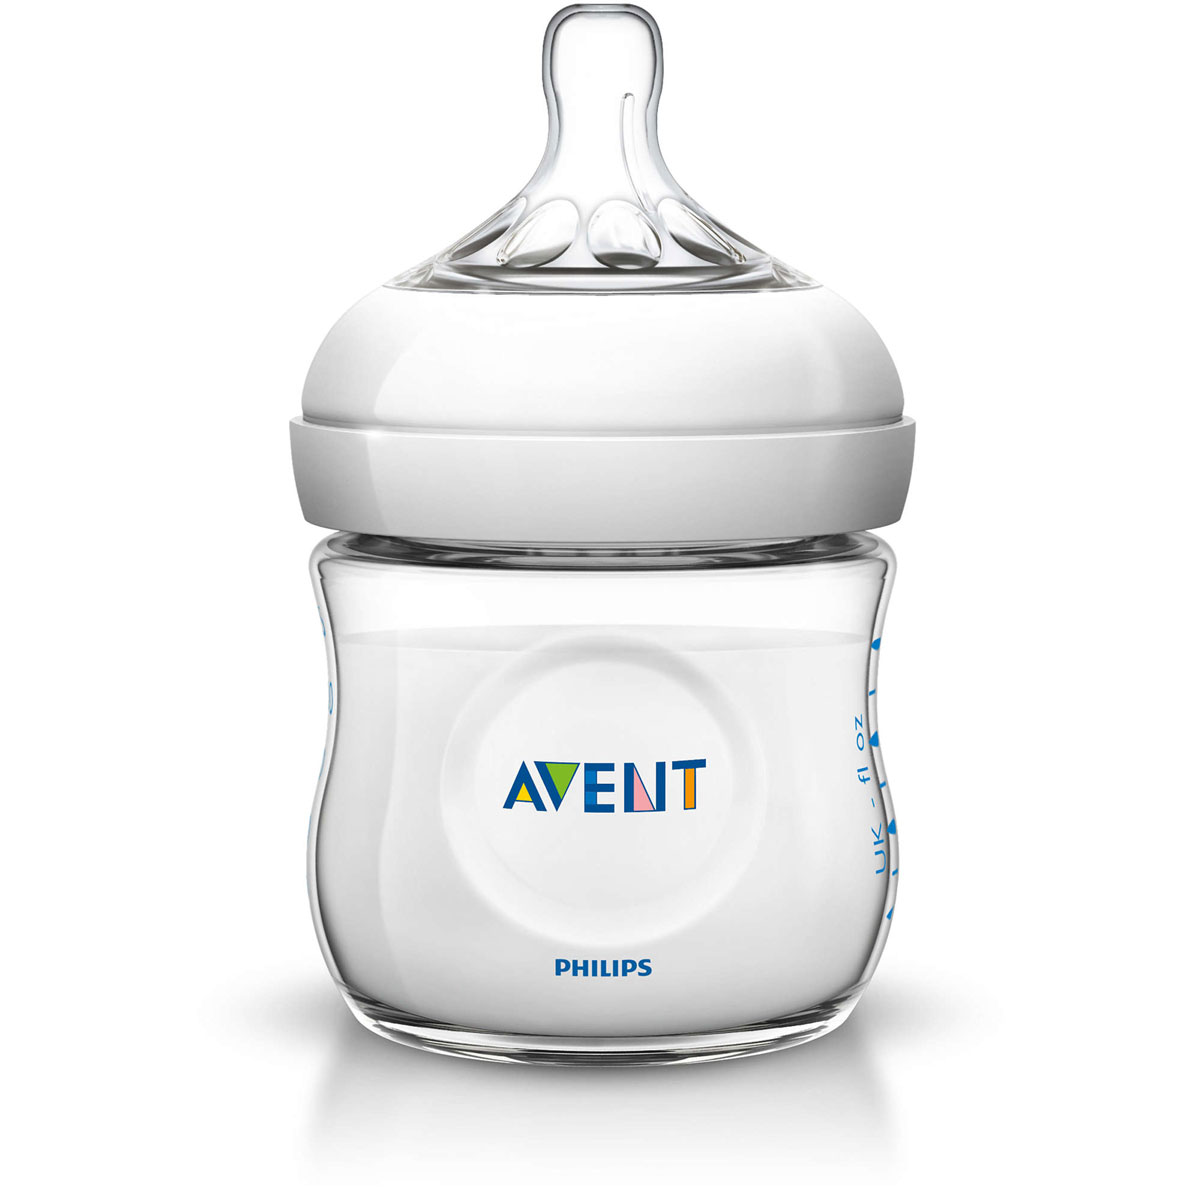 Philips Avent Бутылочка серии Natural, 125 мл, 0мес+, 1 шт SCF690/17 philips avent philips avent бутылочка для кормления natural 125 мл scf690 17